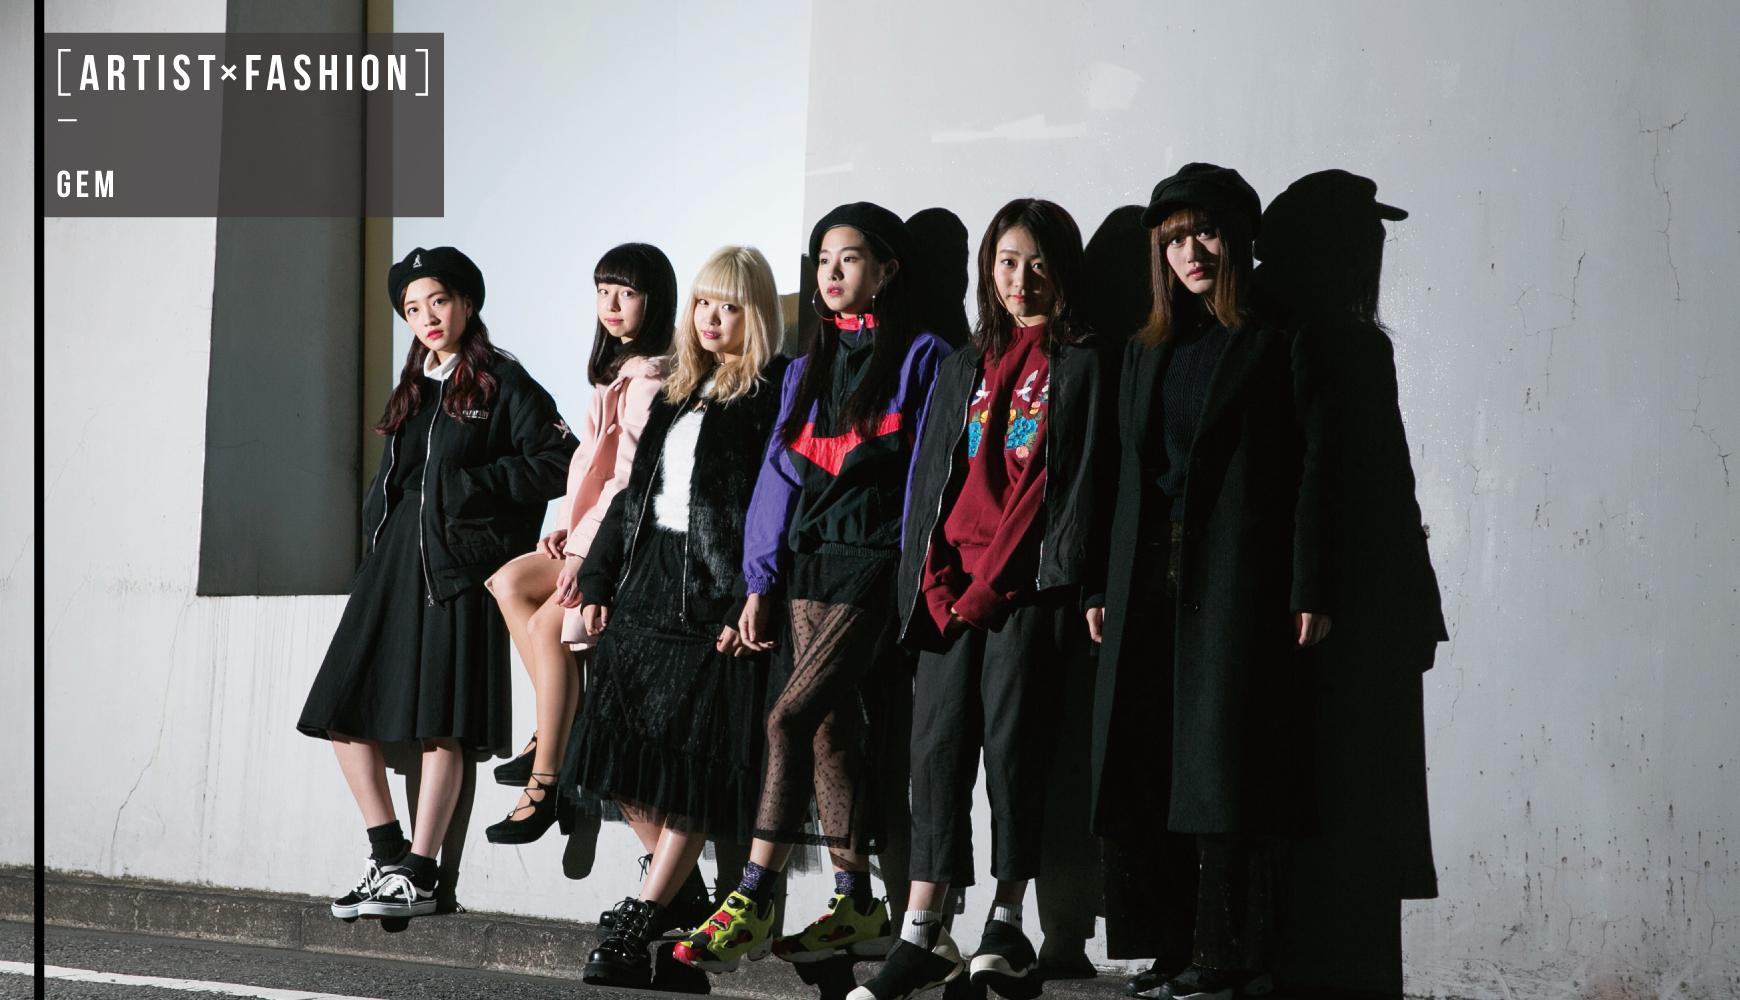 [ARTIST×FASHION]GEM